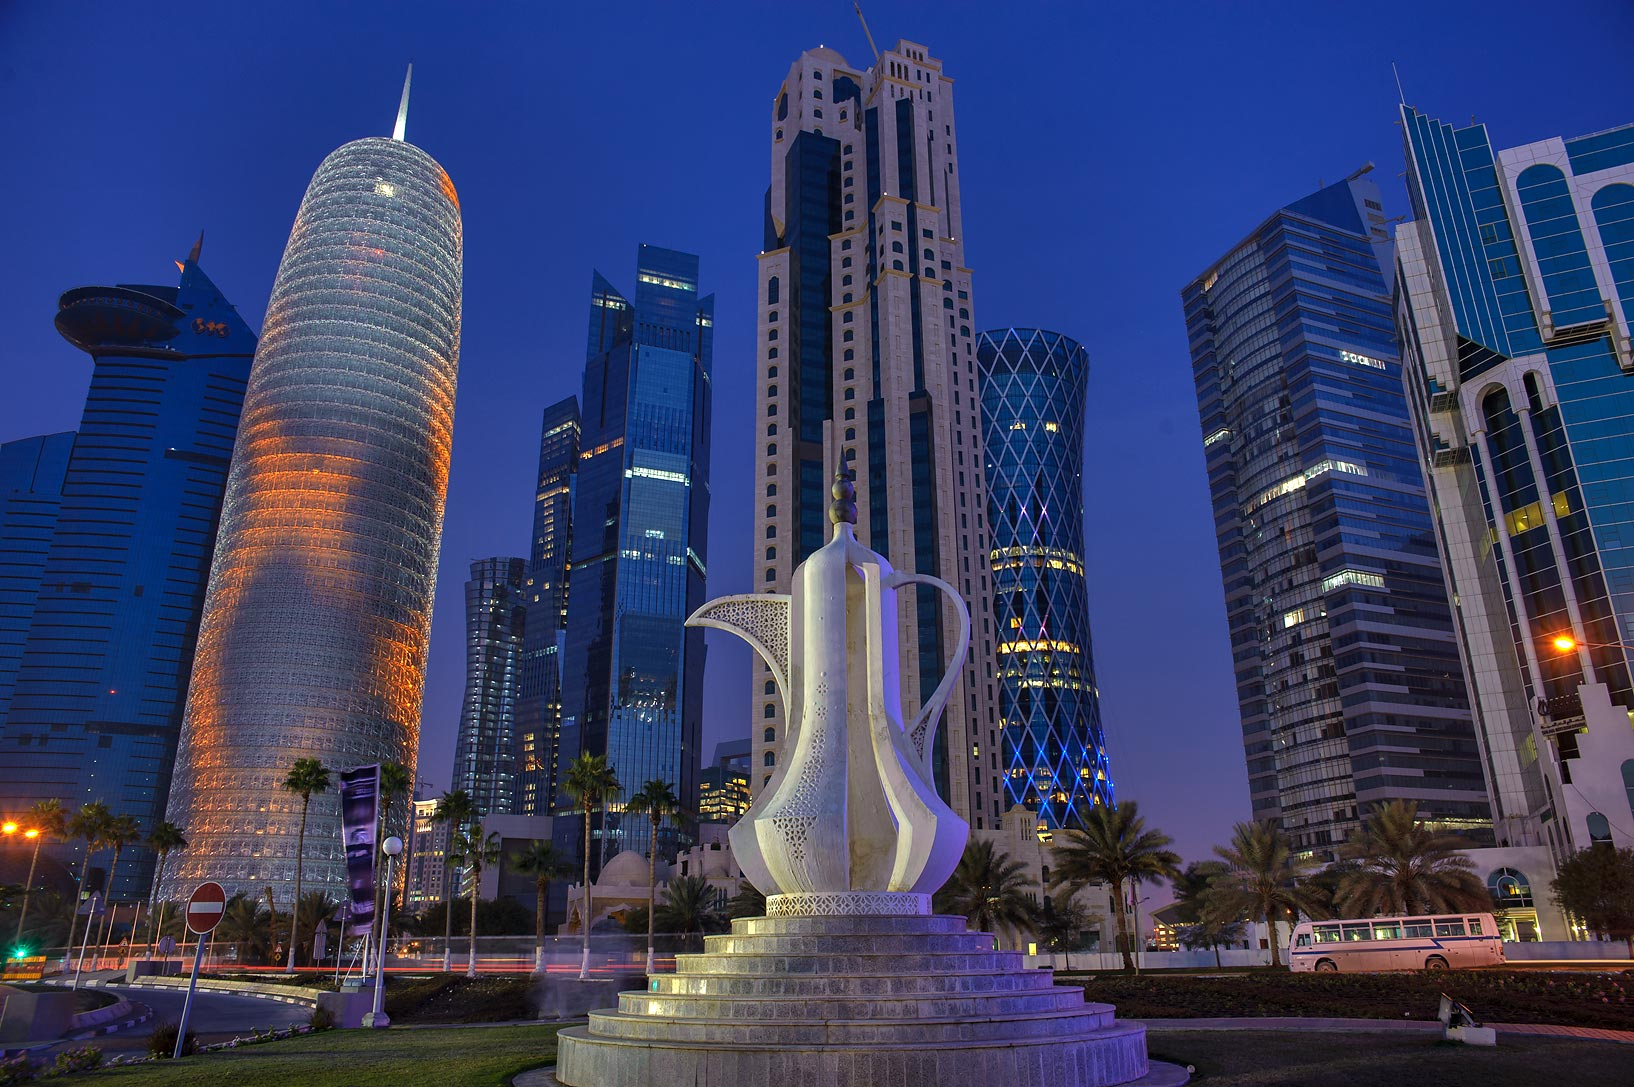 Sculpture Hd Wallpapers Qatar Monument Search In Pictures